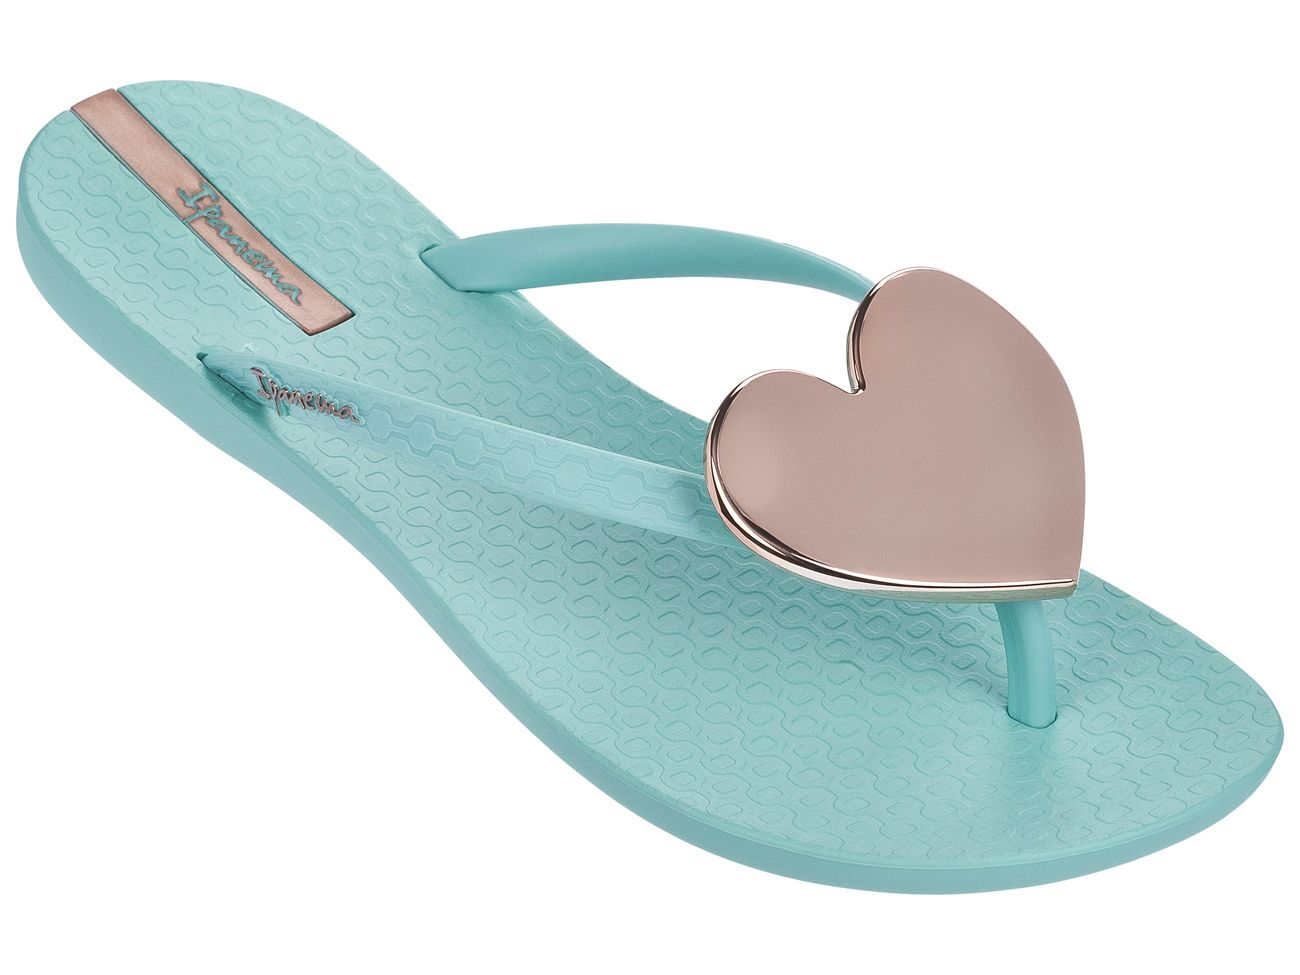 66e22a2f781f28 Wave Maxi Heart Flip Flops Slim Footbed Beach Sandals beach  slipper footwear thongs